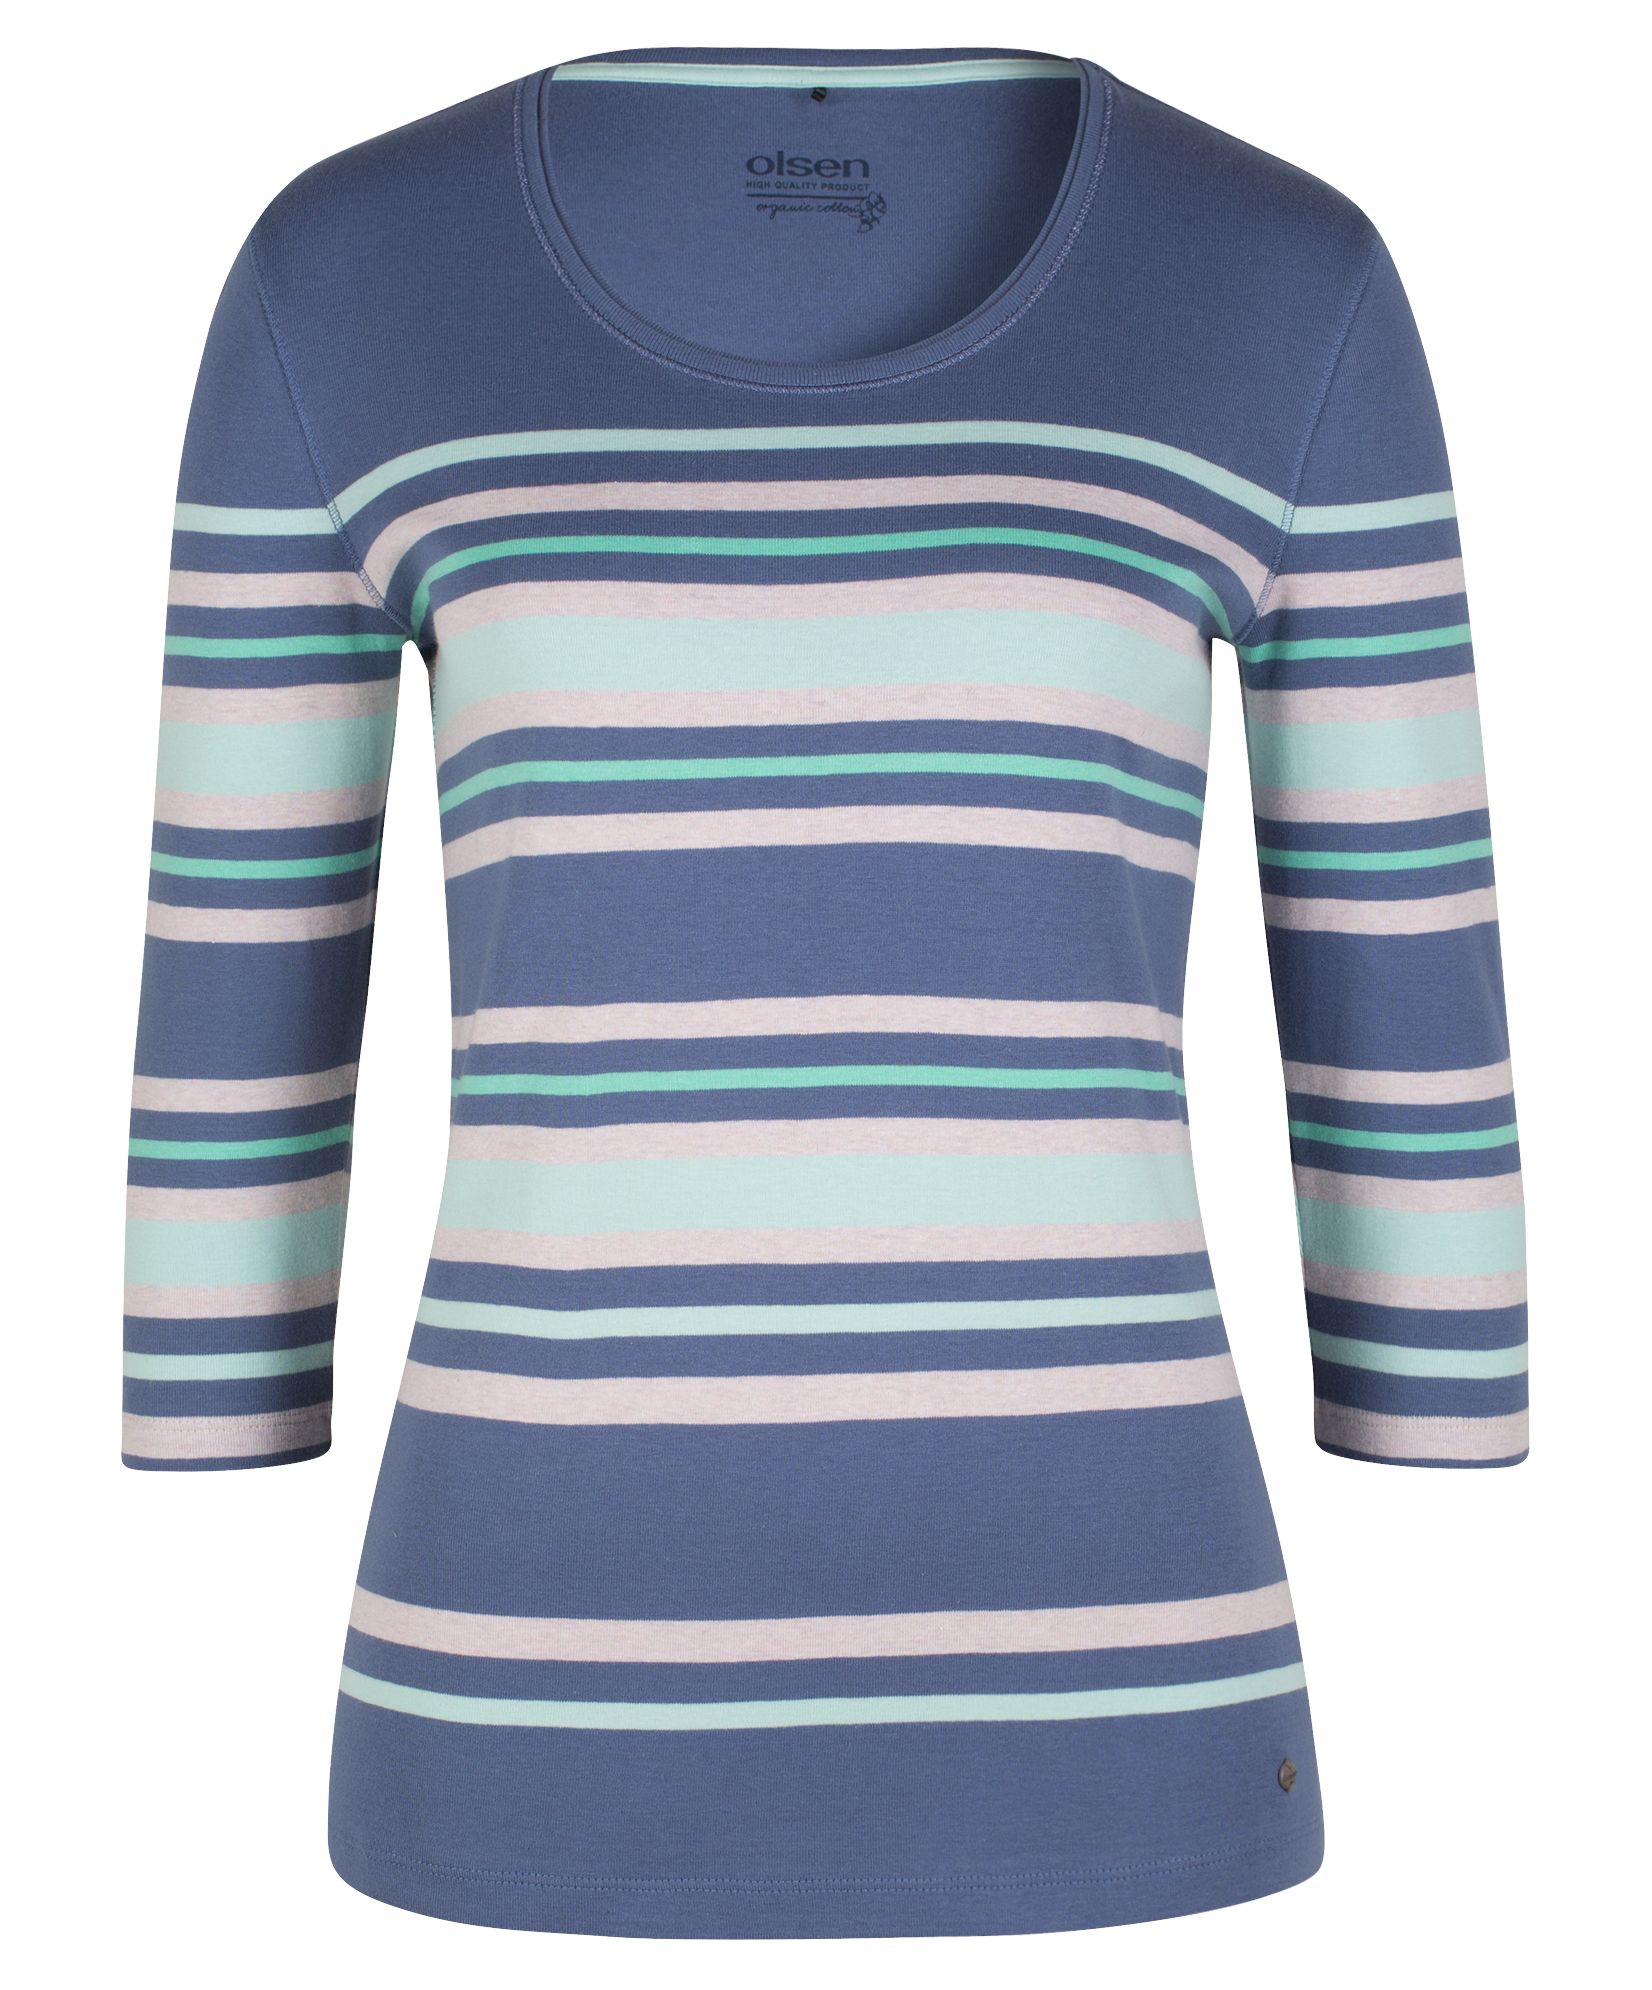 Olsen T-Shirt Multicolour Stripes, Denim